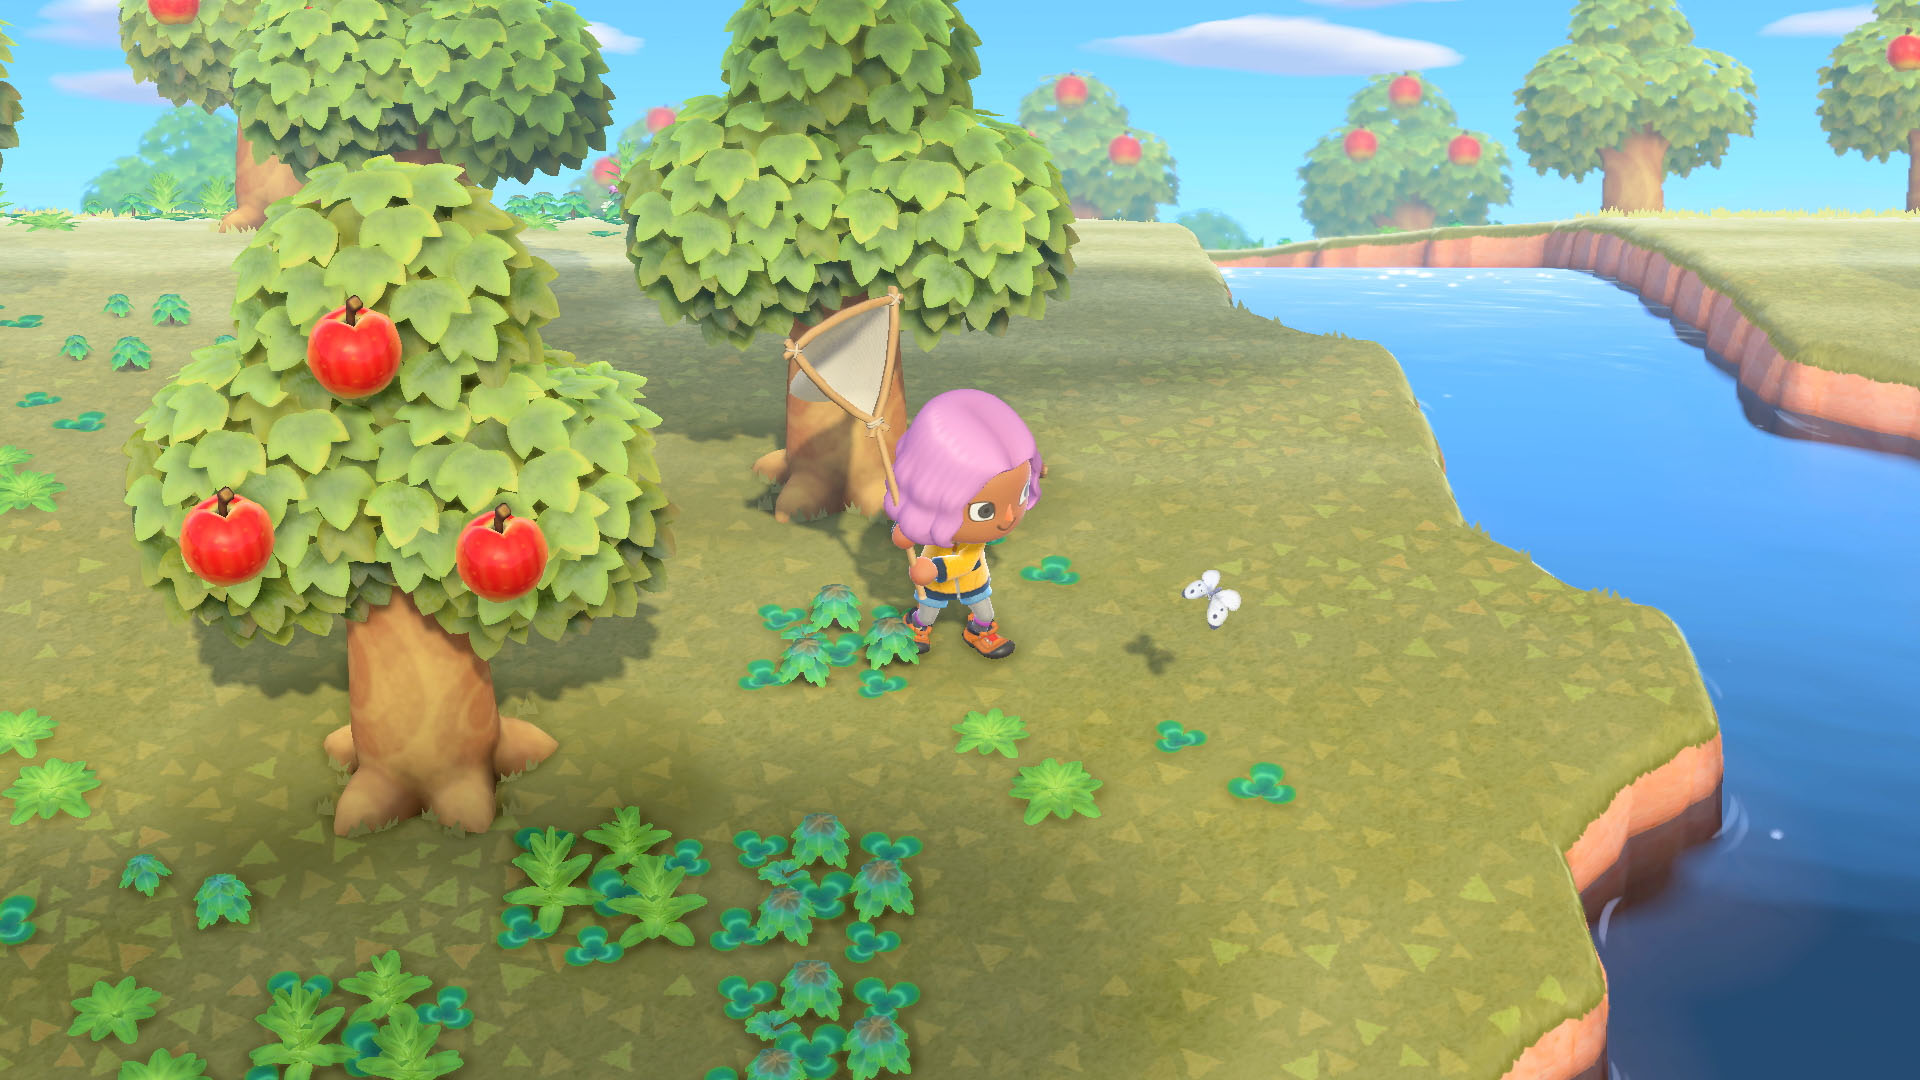 catching fleas and other bugs - animal crossing: new horizons